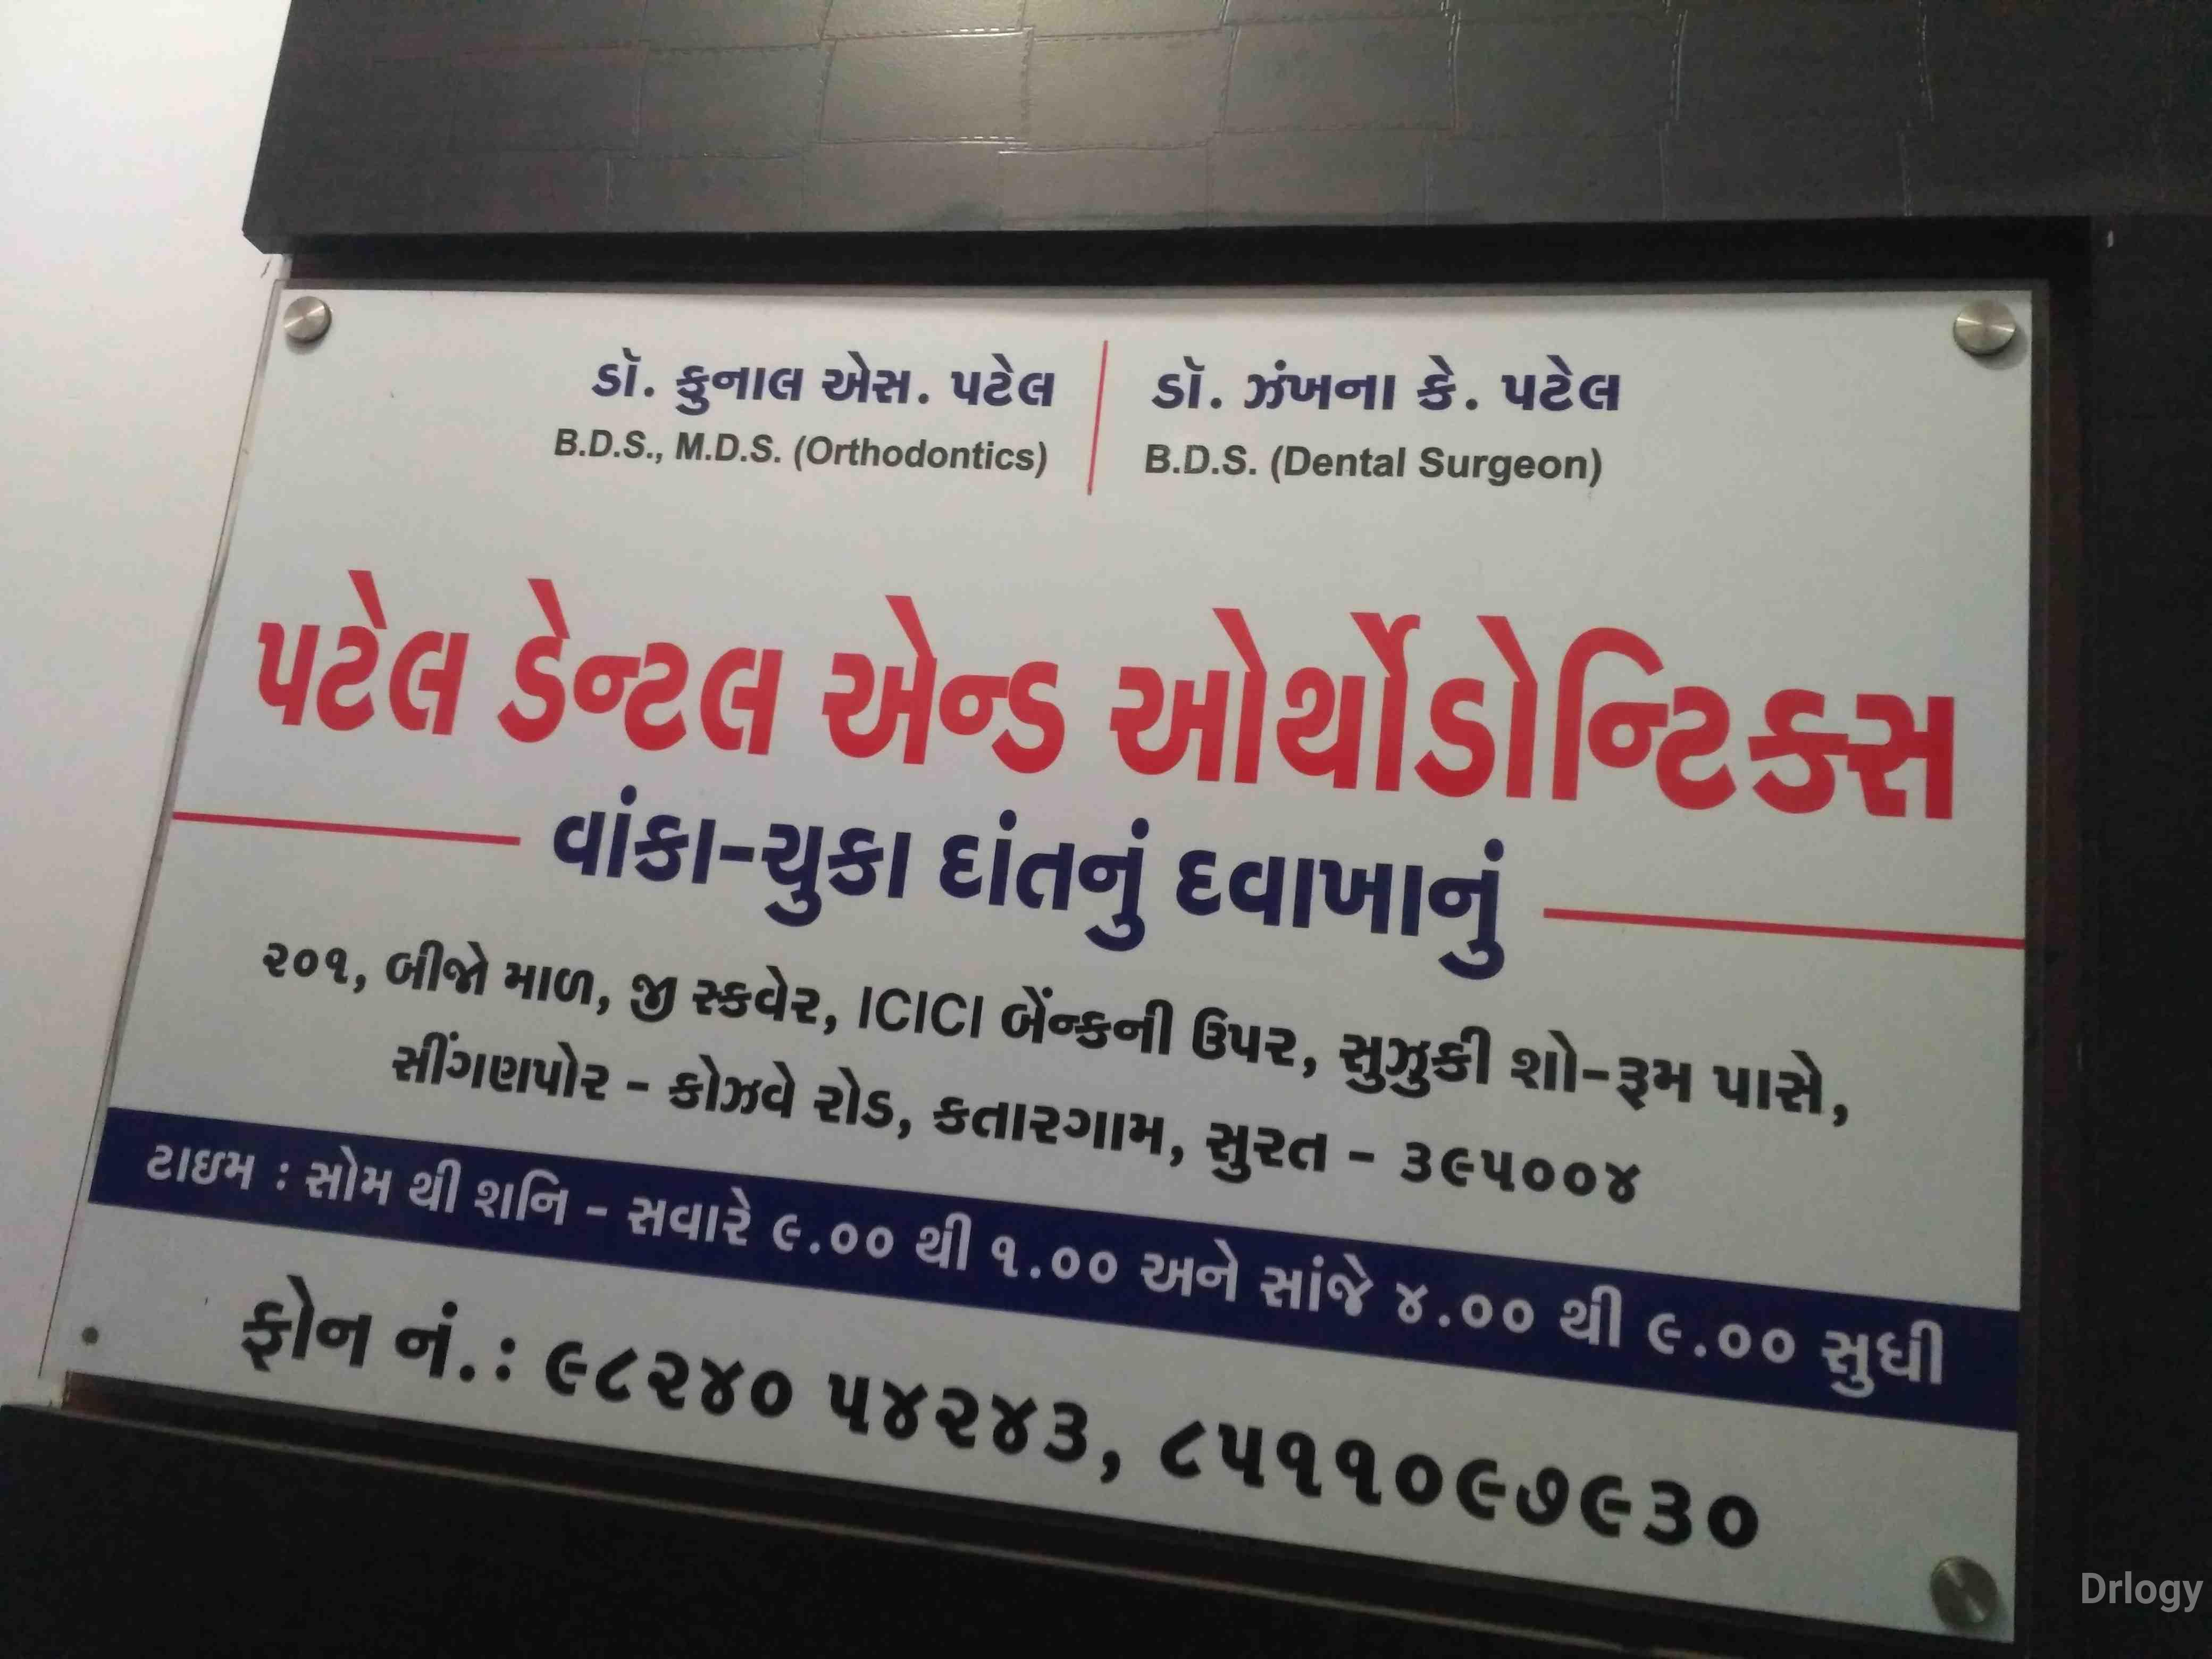 Patel dental and orthodontic clinic in Surat